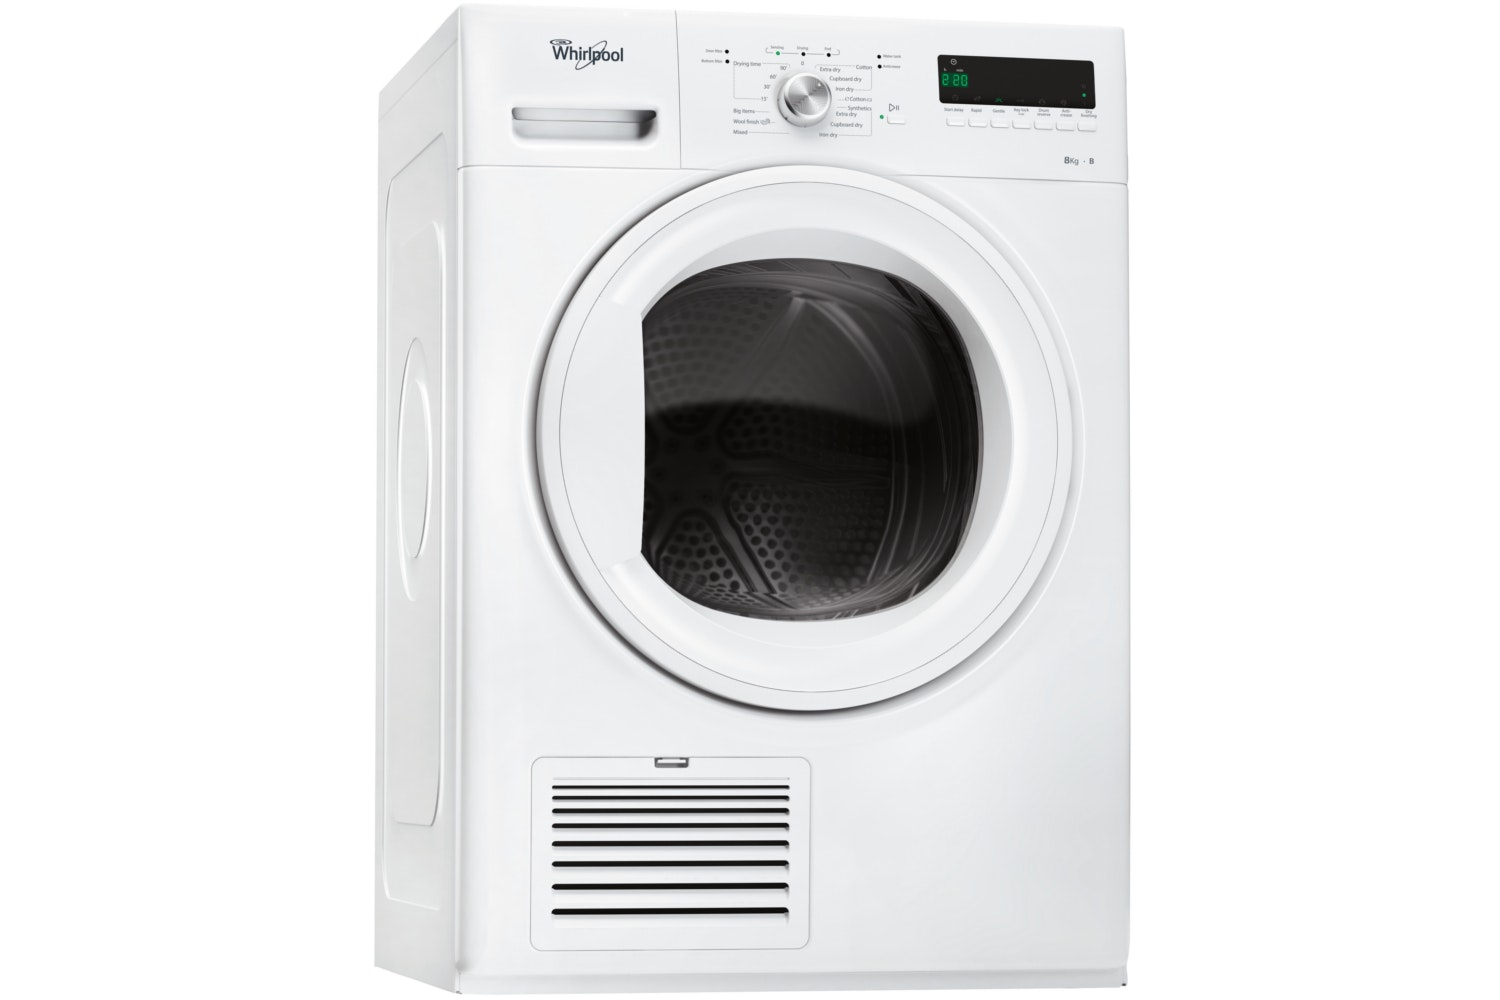 Whirlpool 8kg 6th Sense Condensor Dryer | DDLX80114